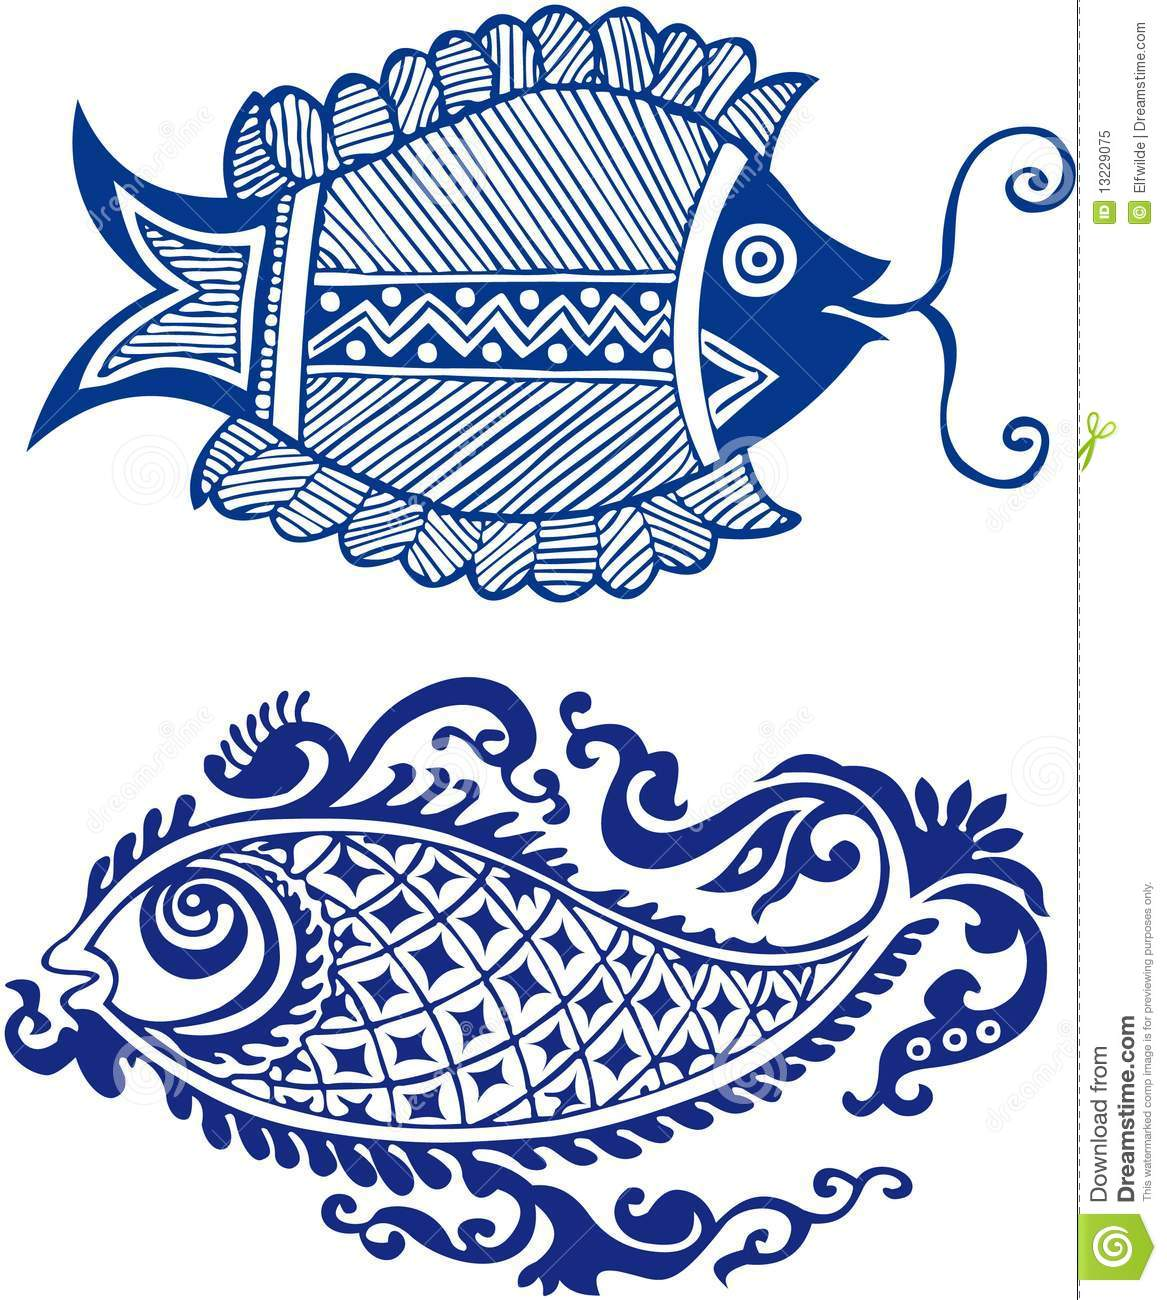 Fairy eastern fish patterns stock illustration for Fishing times free